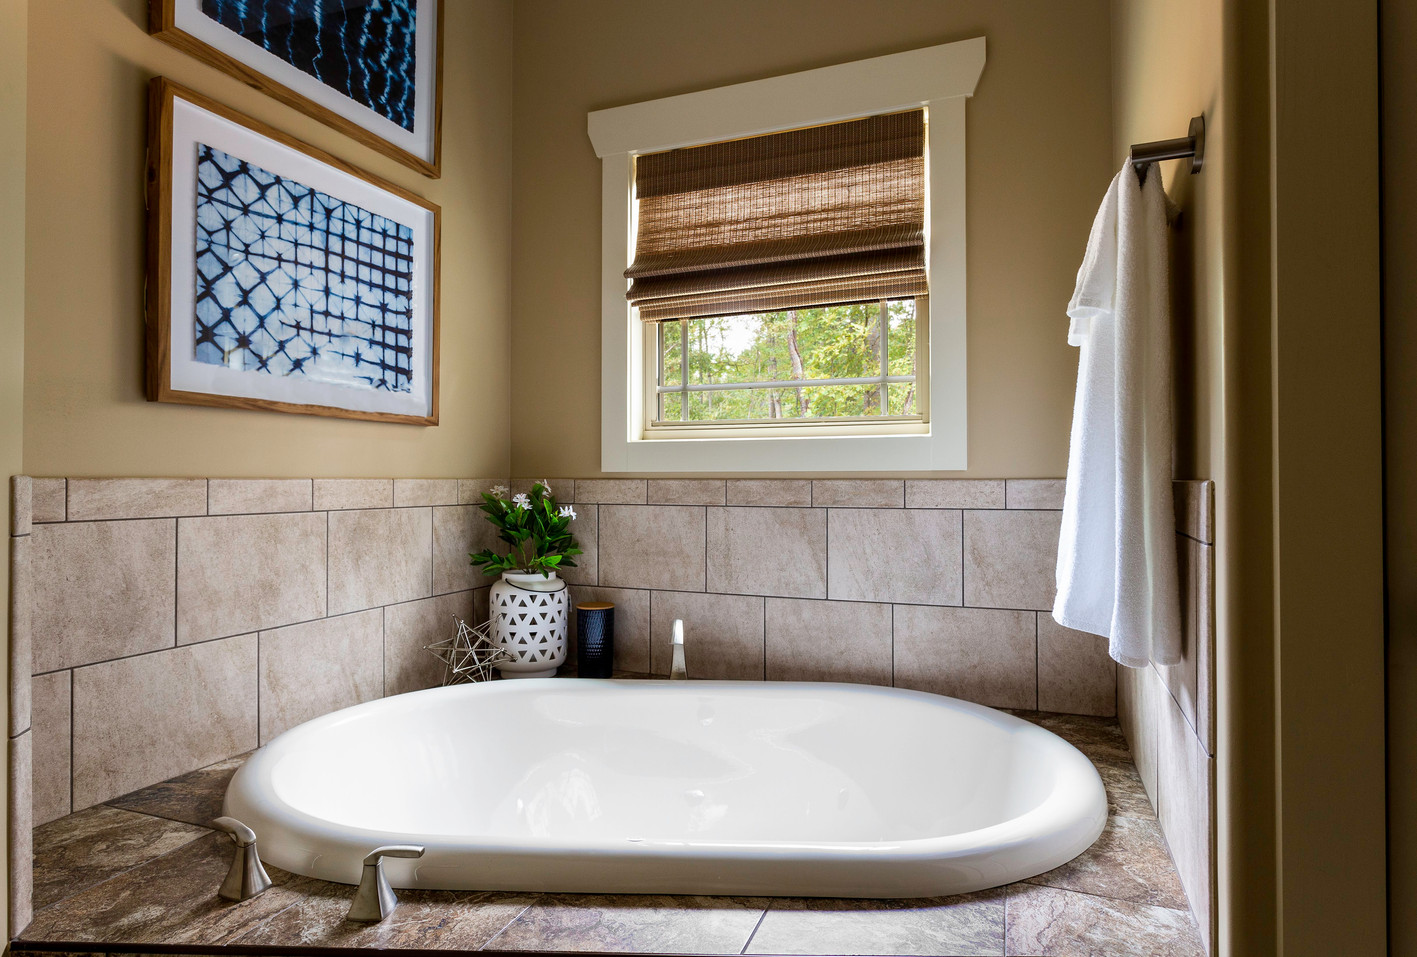 Large 2 person garden tub